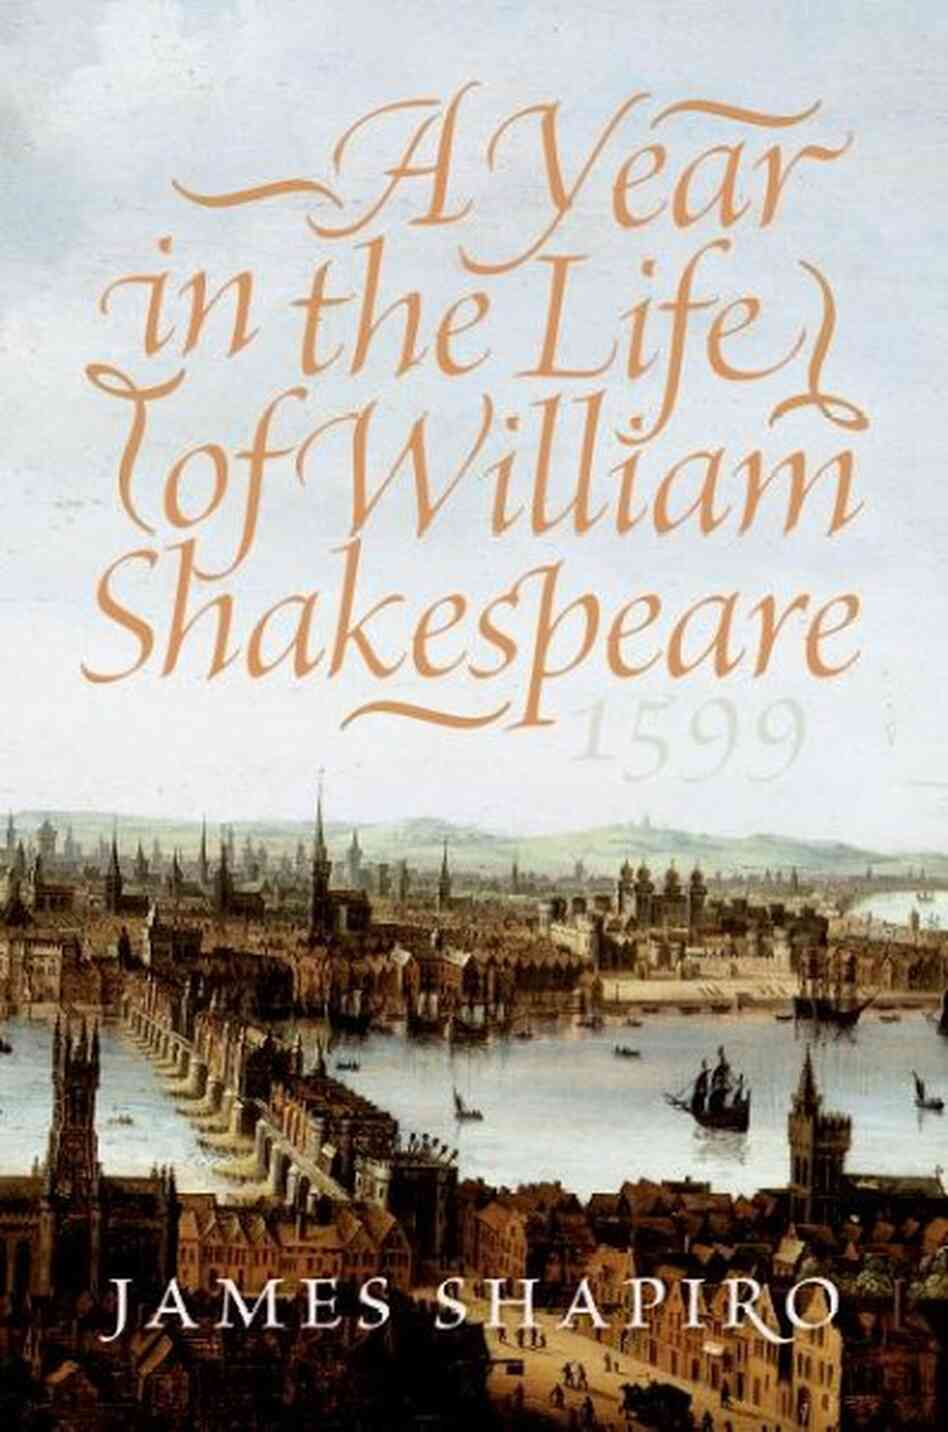 the life of shakespeare Explore shakespeare's life, work and continuing influence with our unique collections and a wealth of blogs, courses, digital tools and online communities.